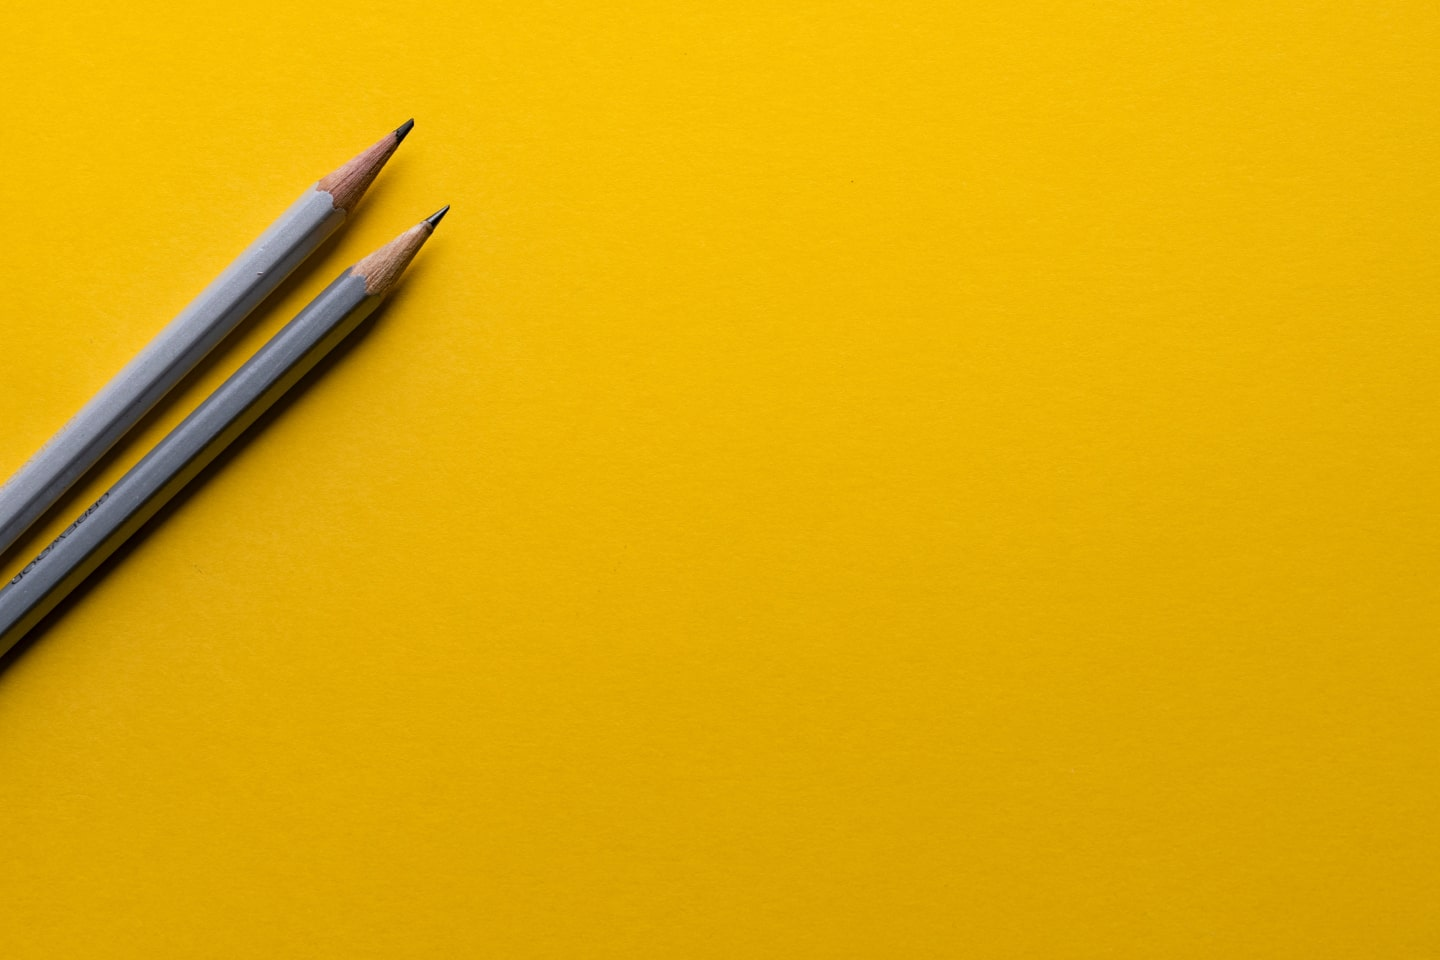 Pencils on a yellow background